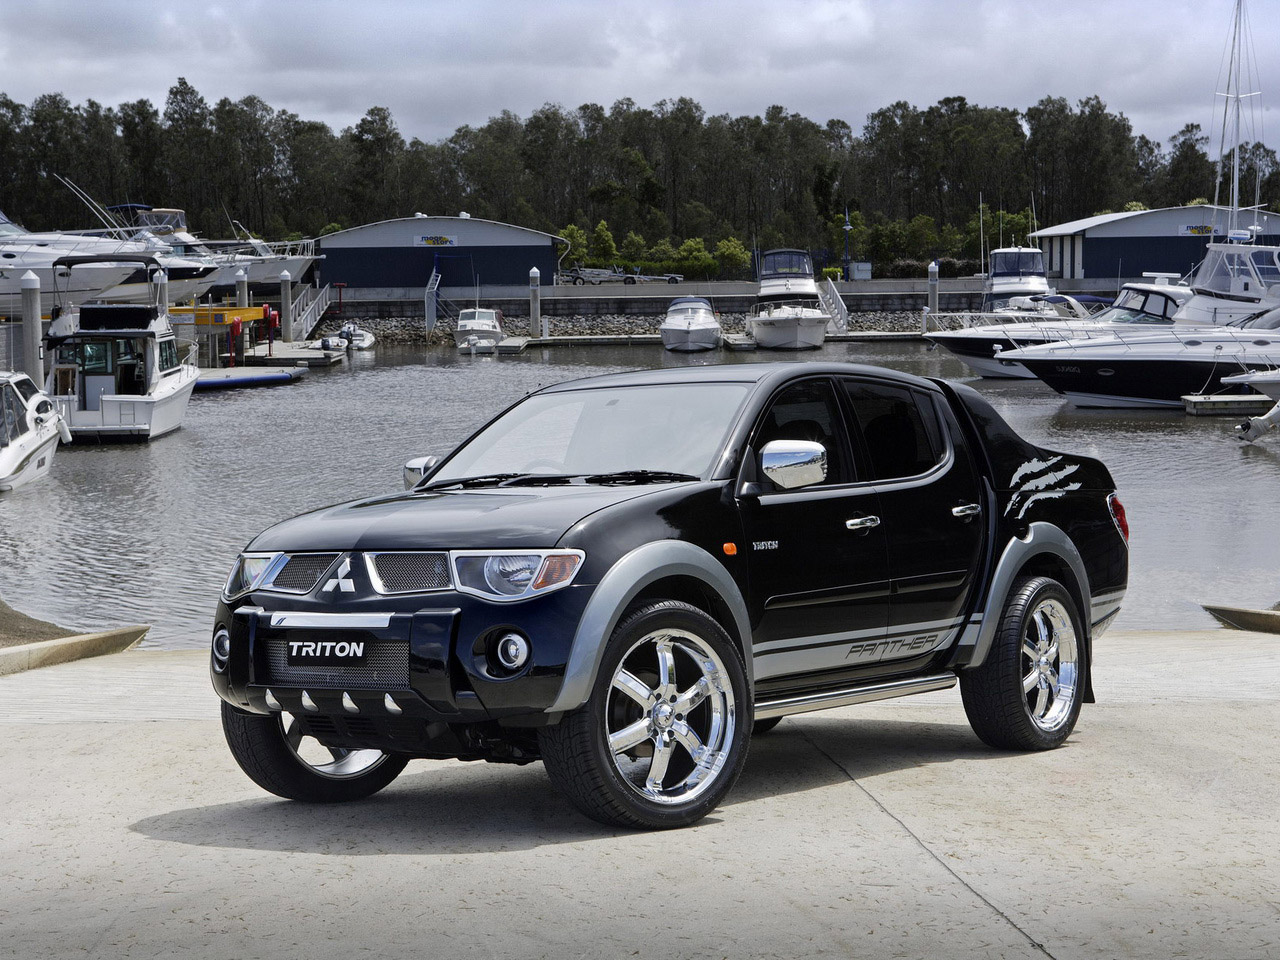 New Mitsubishi Triton Cars review and specs